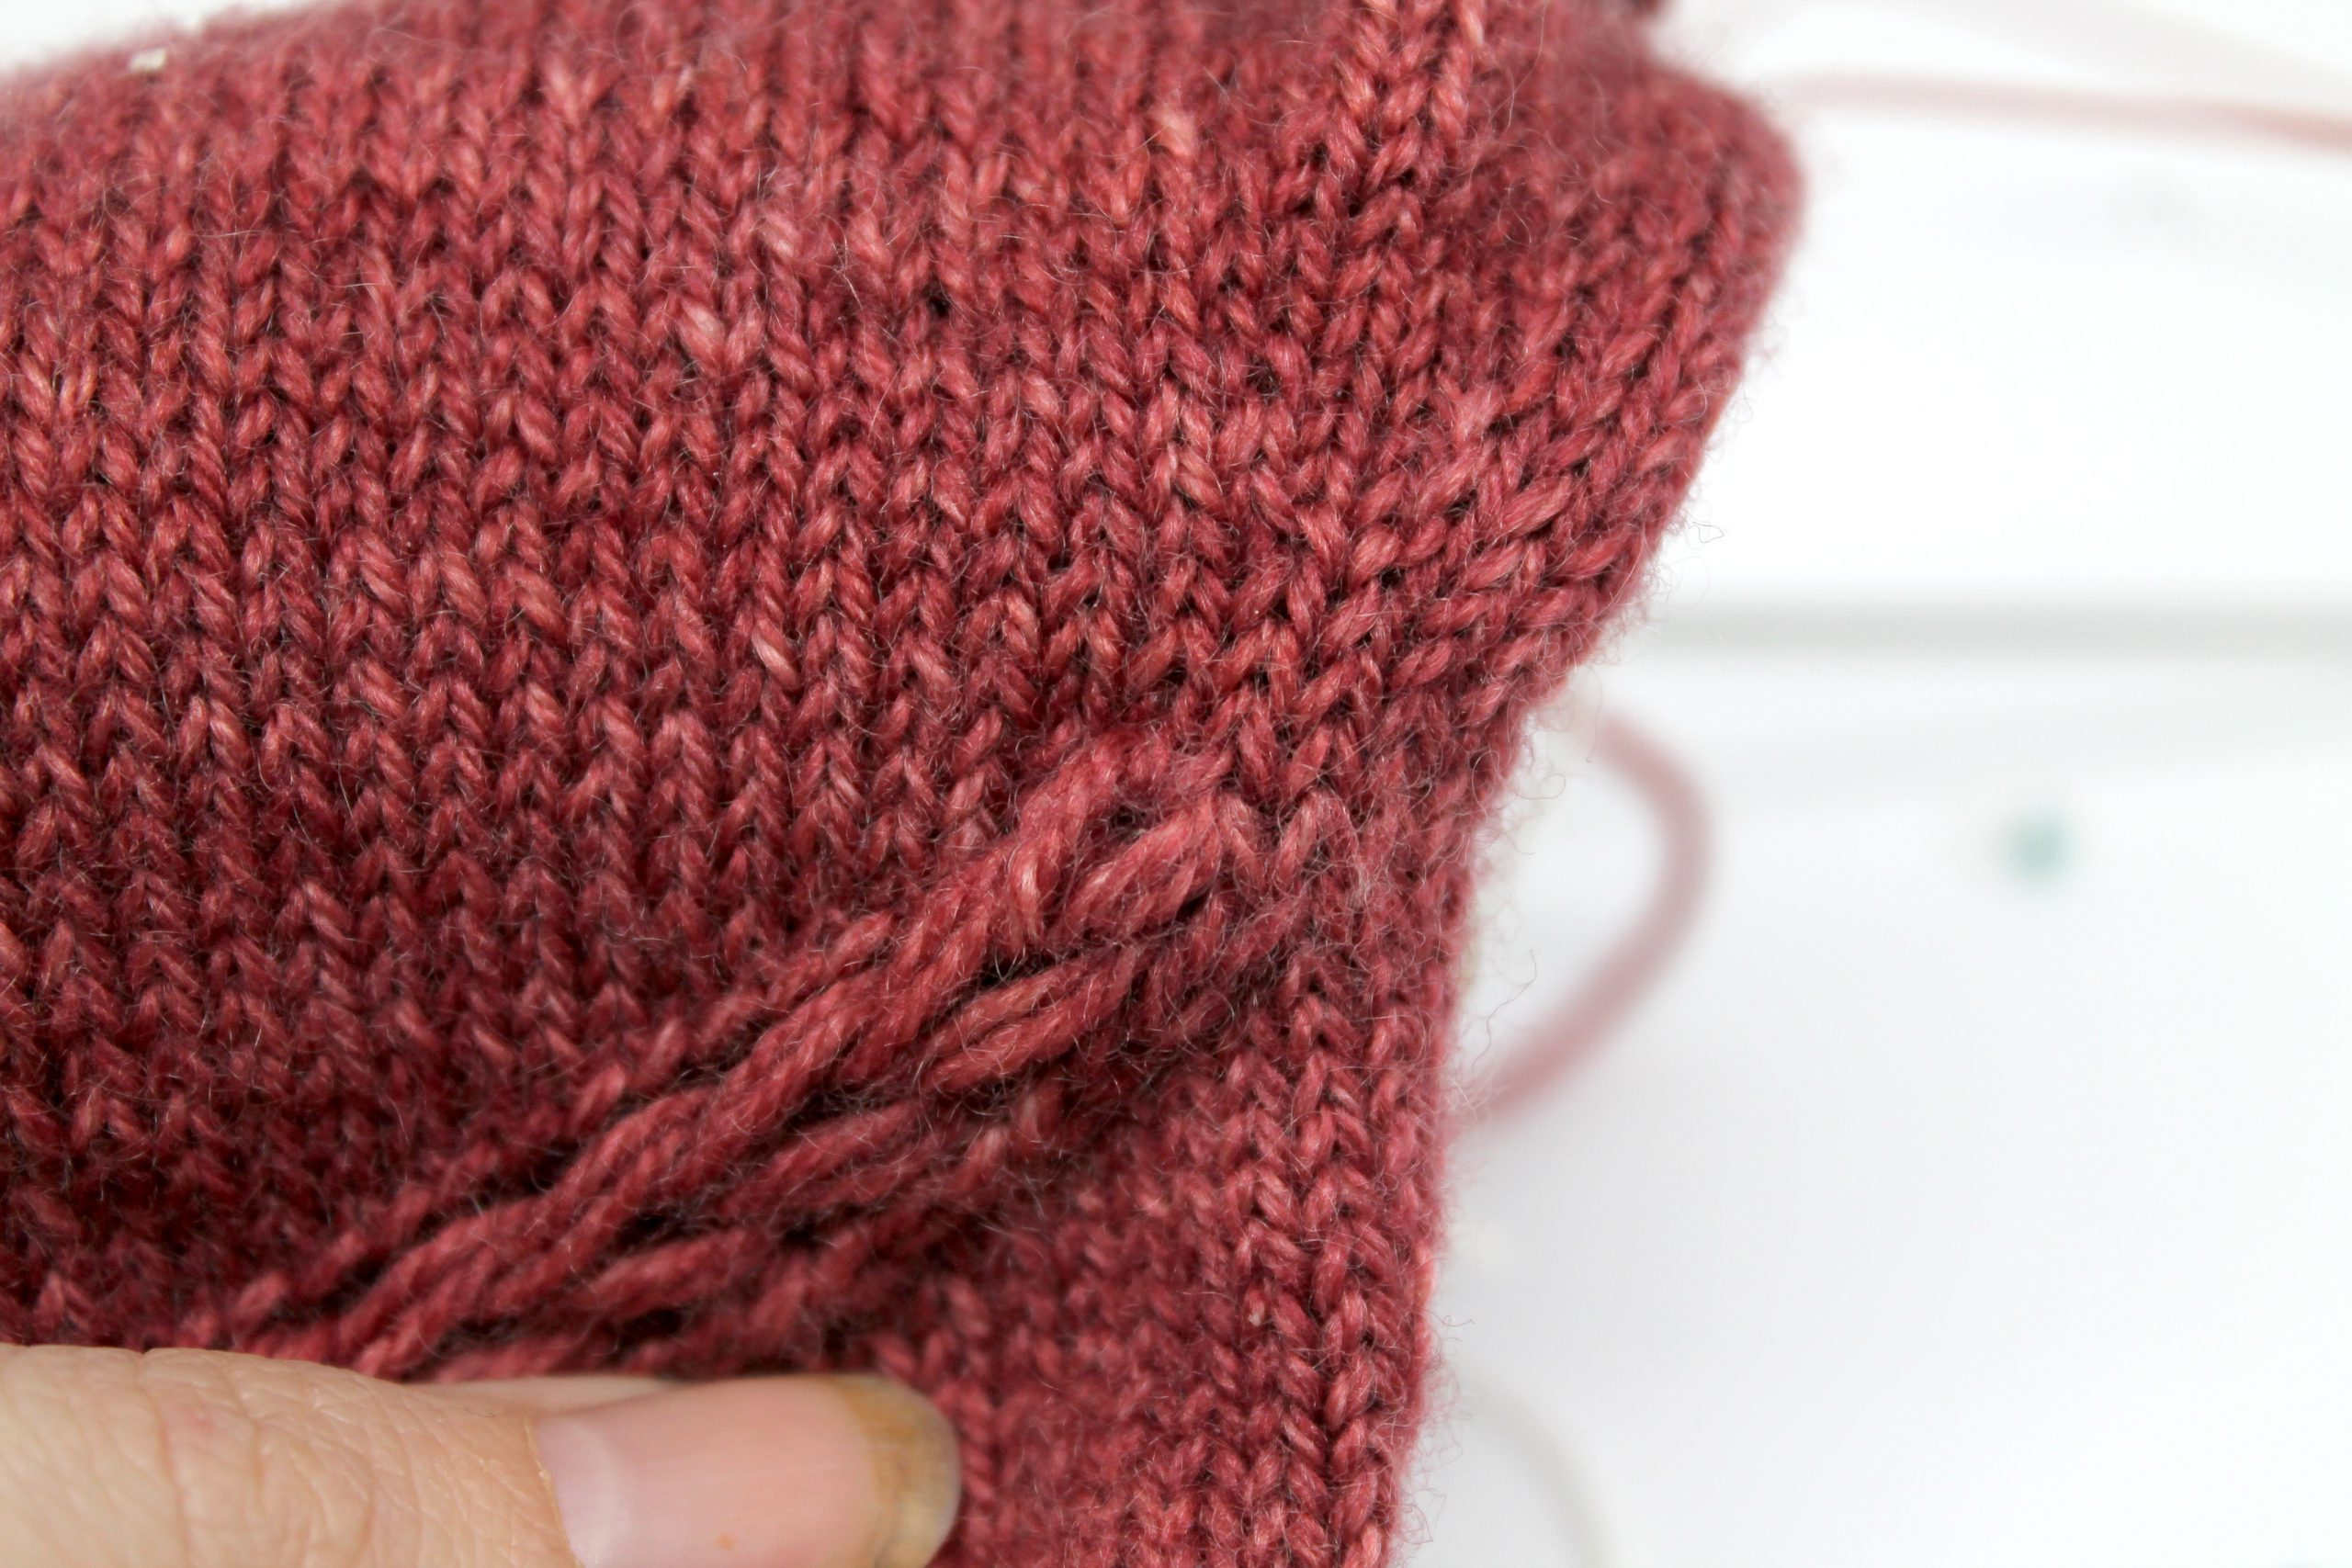 A close up on the finished drop stitch braid showing how it meets the knitting above showing several rows of stitching stitch above the finished braid